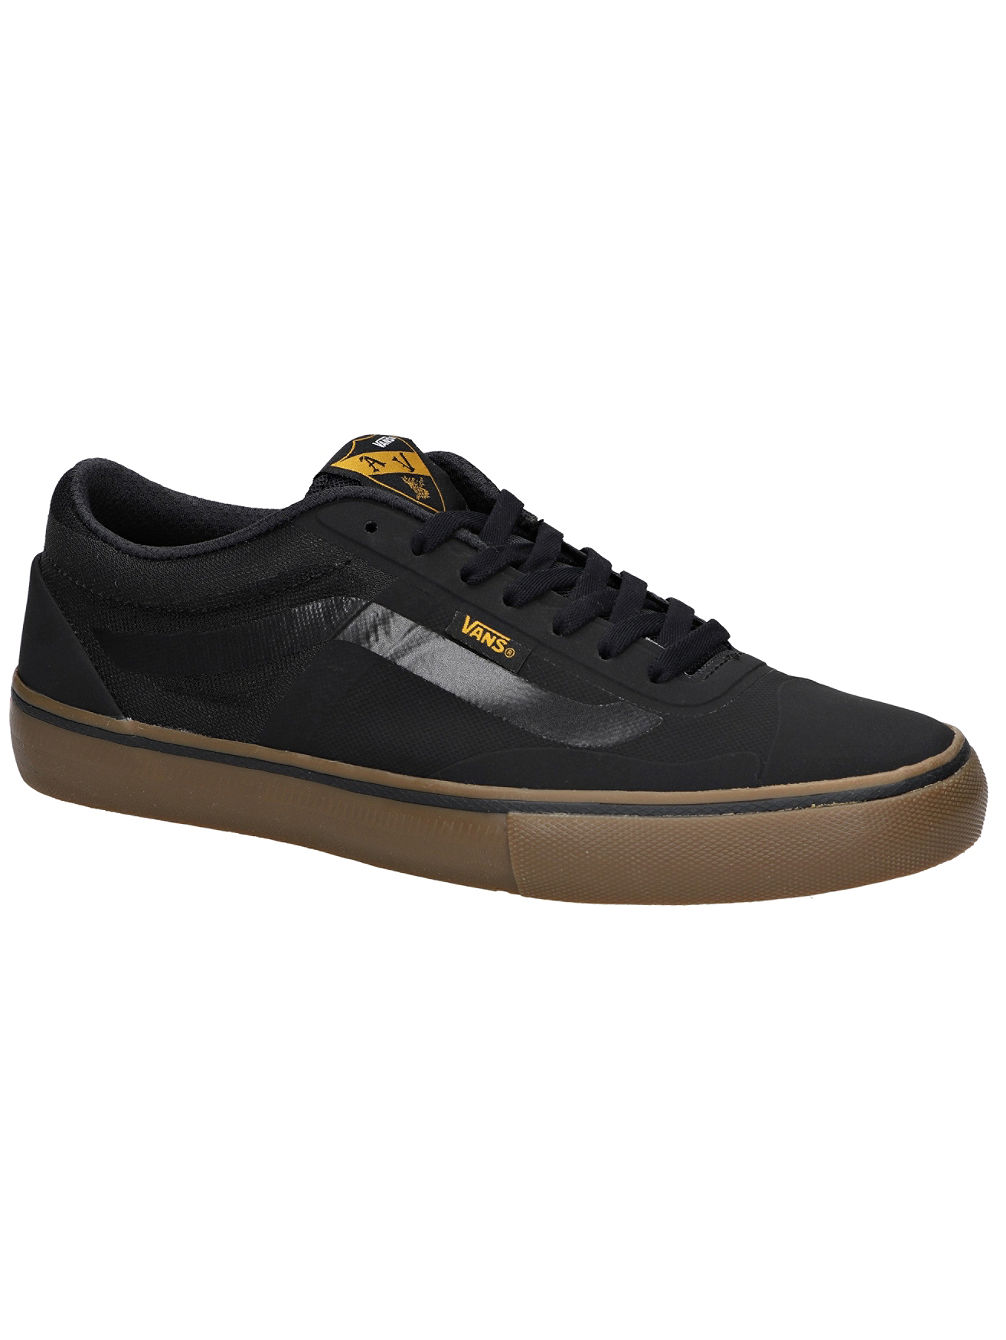 5ba7109170 Buy Vans AV Rapidweld Pro Lite Skate Shoes online at Blue Tomato